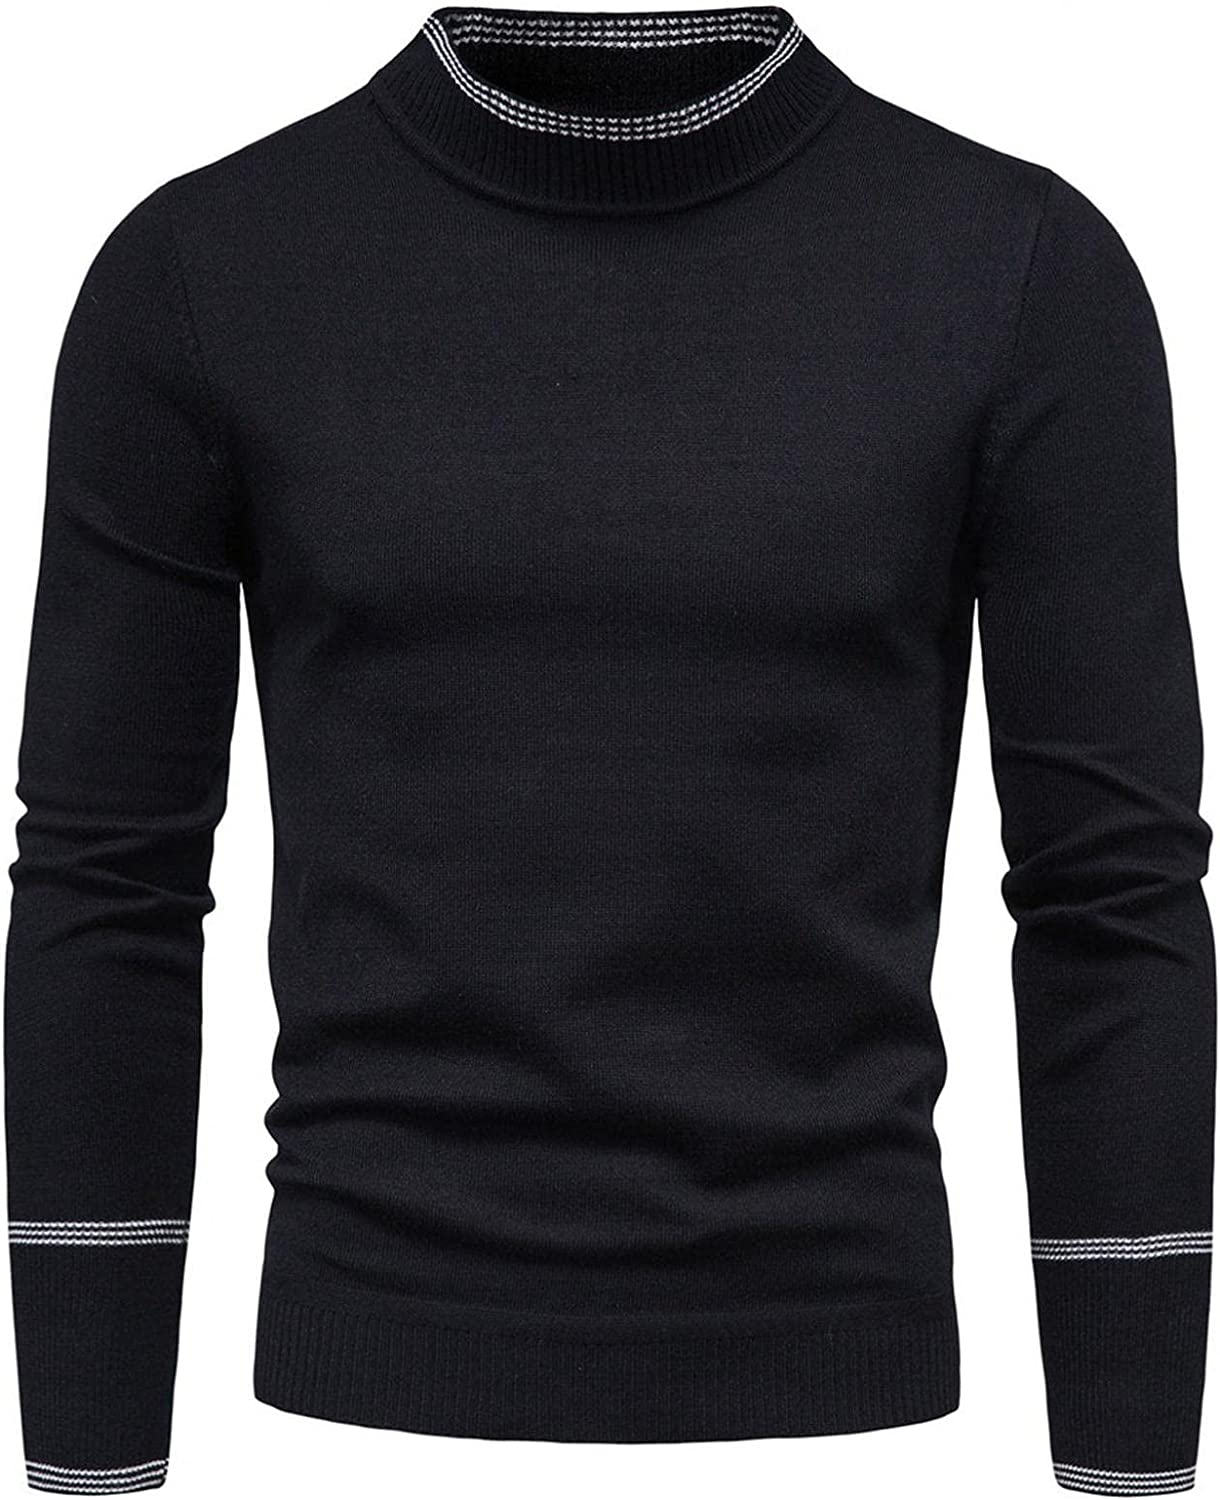 VEKDONE Men's Muscle Fitted Long Sleeve Cotton Cable Stitch Crewneck Sweater Color Block Vintage Ugly Christmas Sweaters